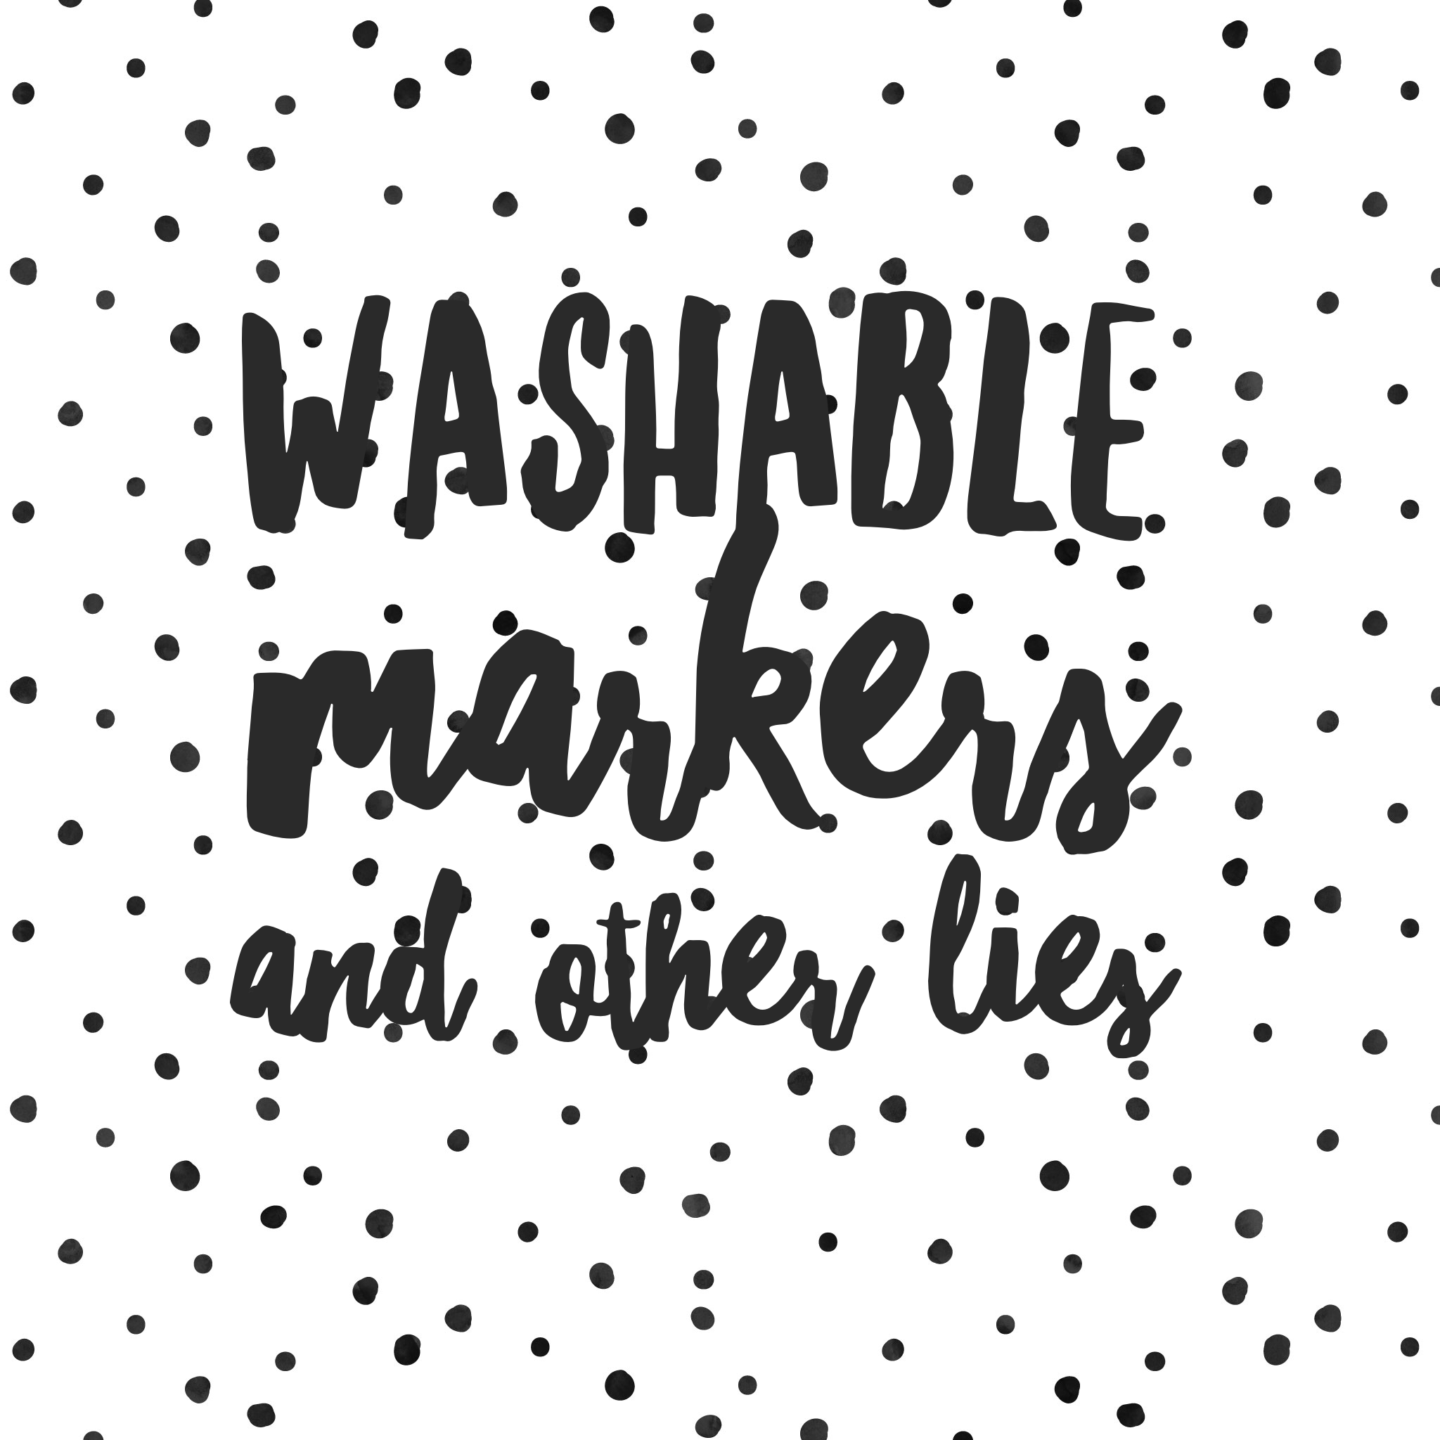 Washable Markers and Other Lies